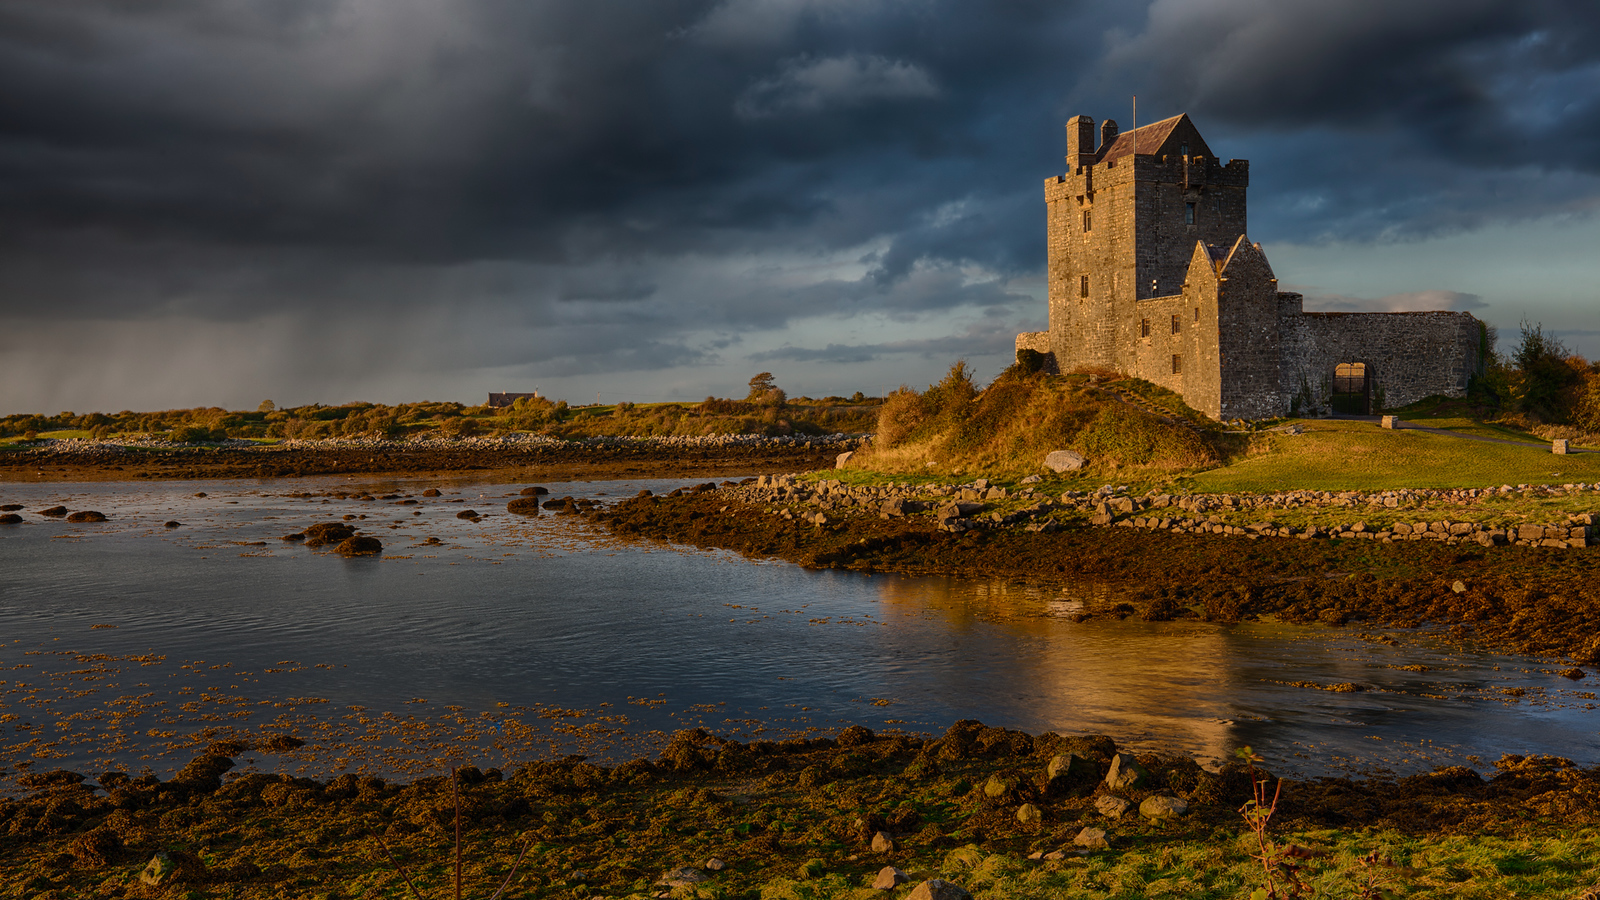 The most photographed castle in Ireland: Dunguaire Castle